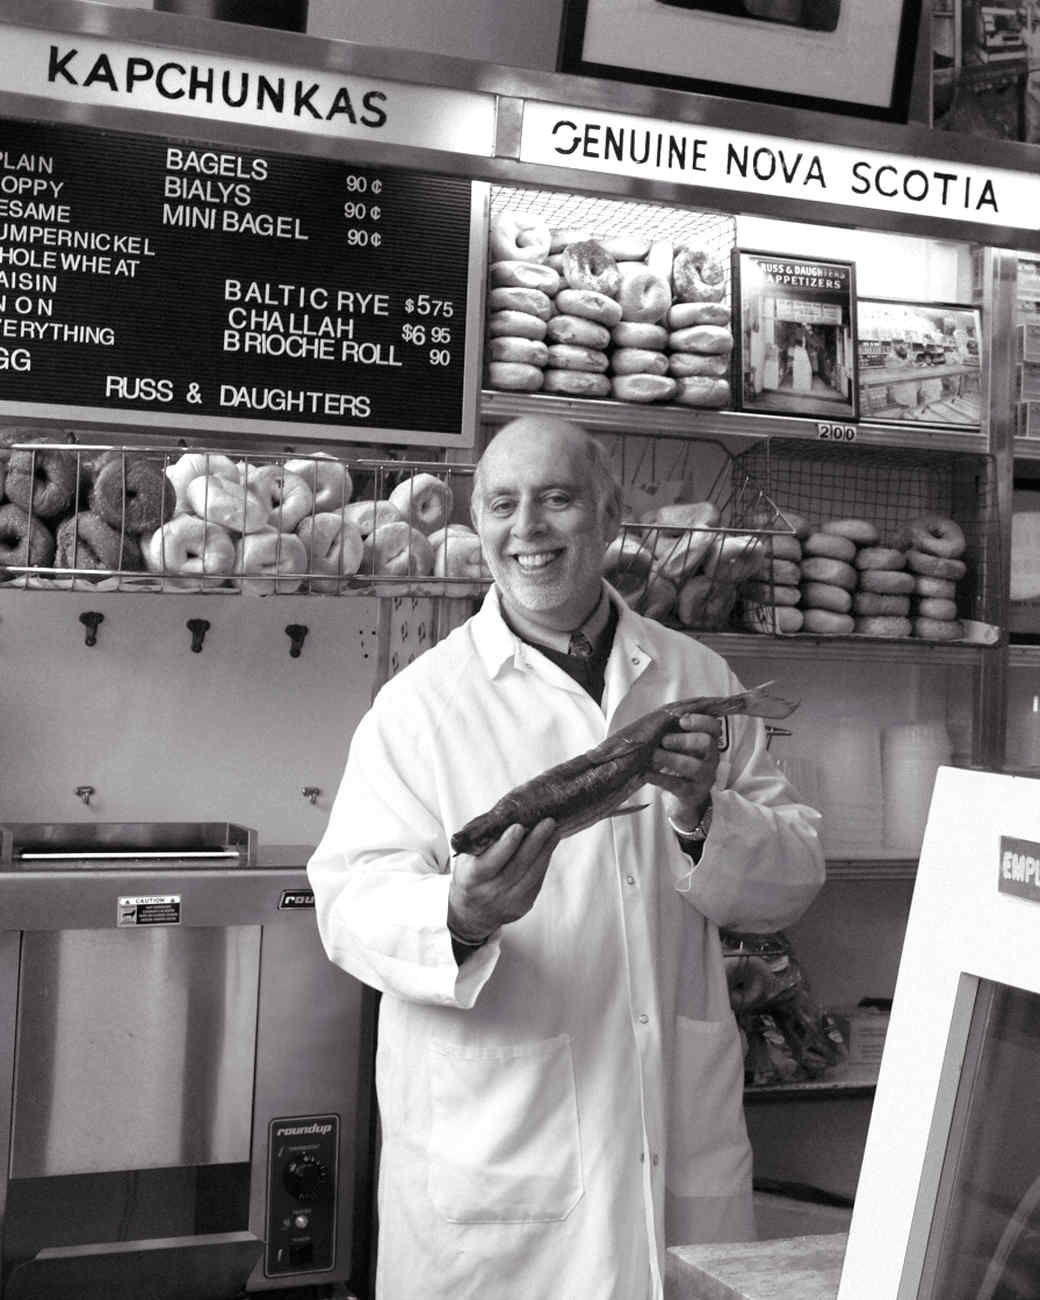 russ-and-daughters-store-md108873.jpg